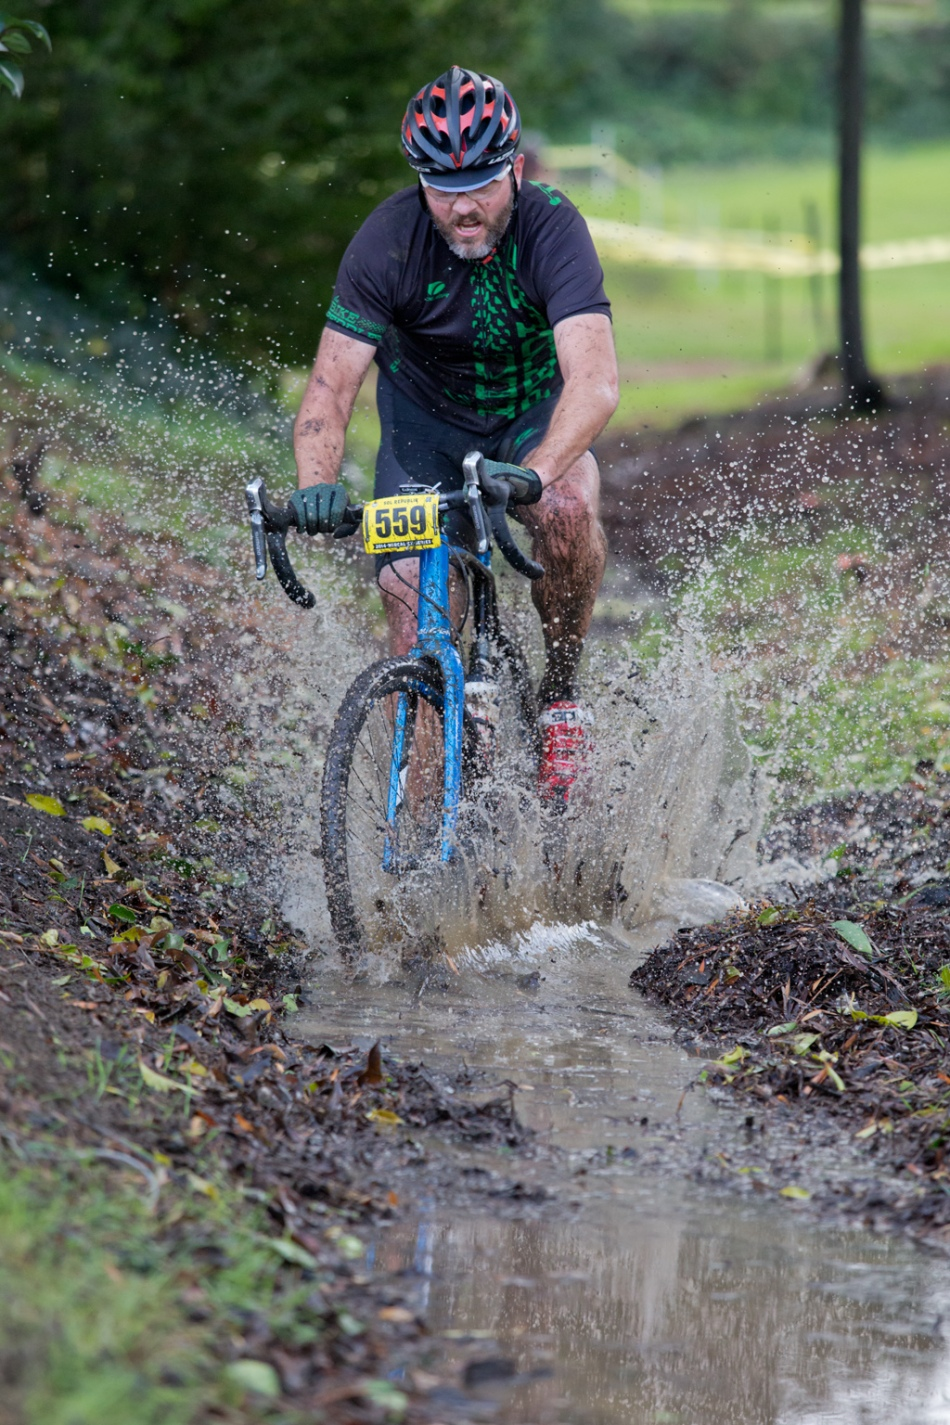 Murphy Mack takes the Kitten of Vallejo course along a creek for Ryan Harding to experience